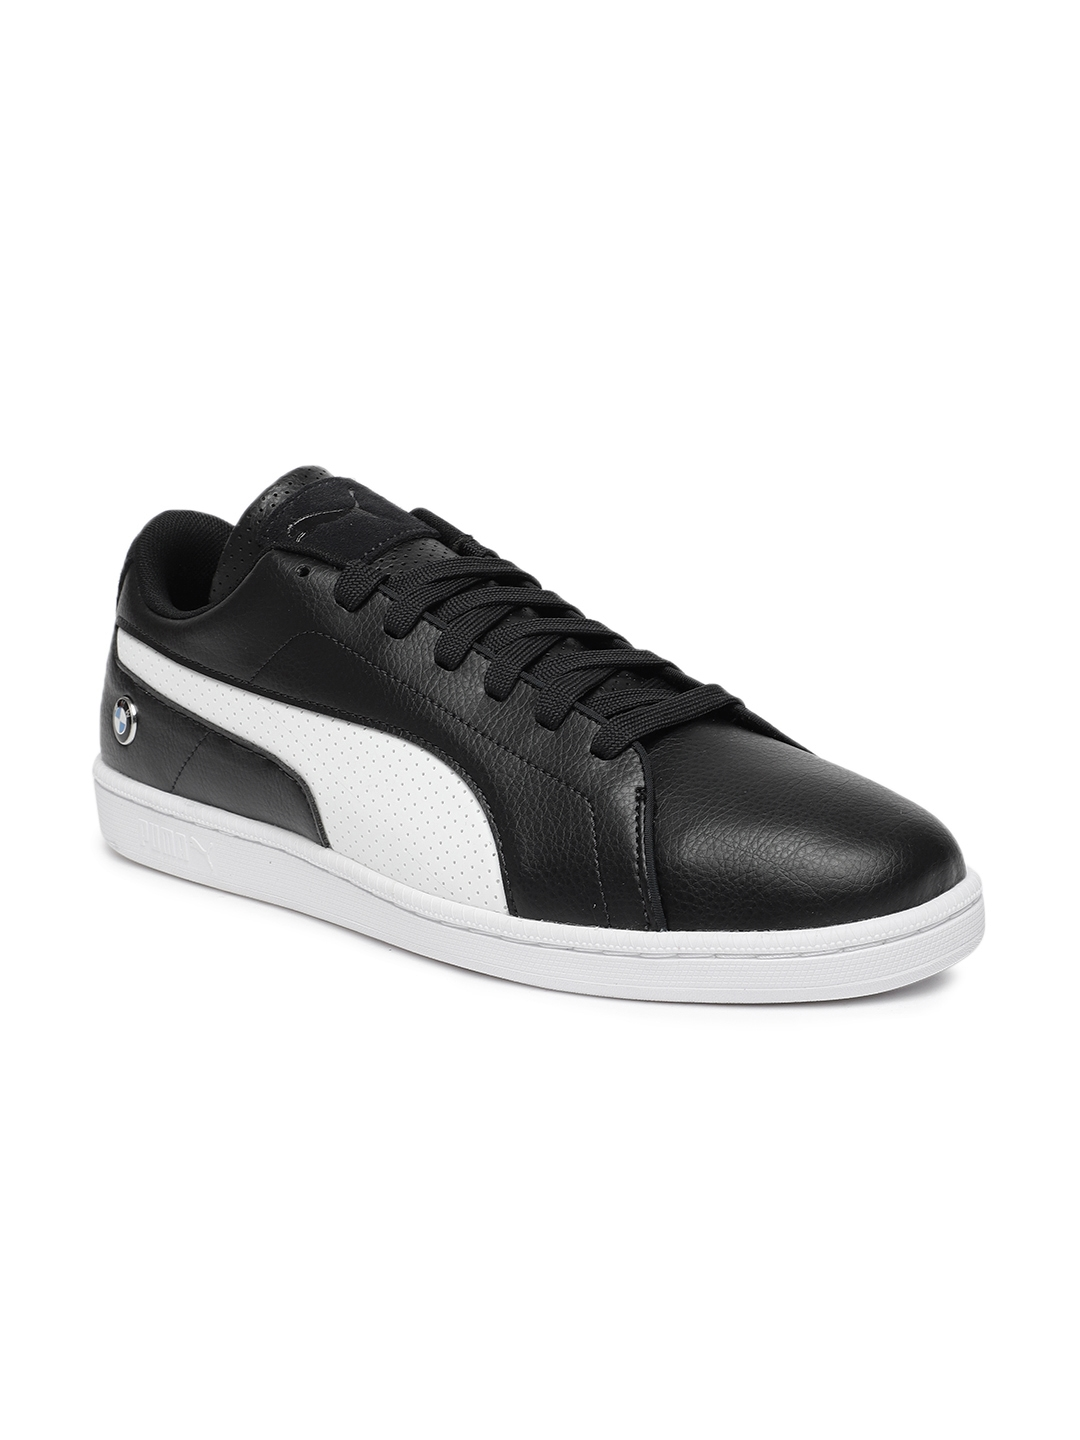 b8da20e31aacb3 Buy Puma Men Black BMW Motorsport Court Perf Sneakers - Casual Shoes ...